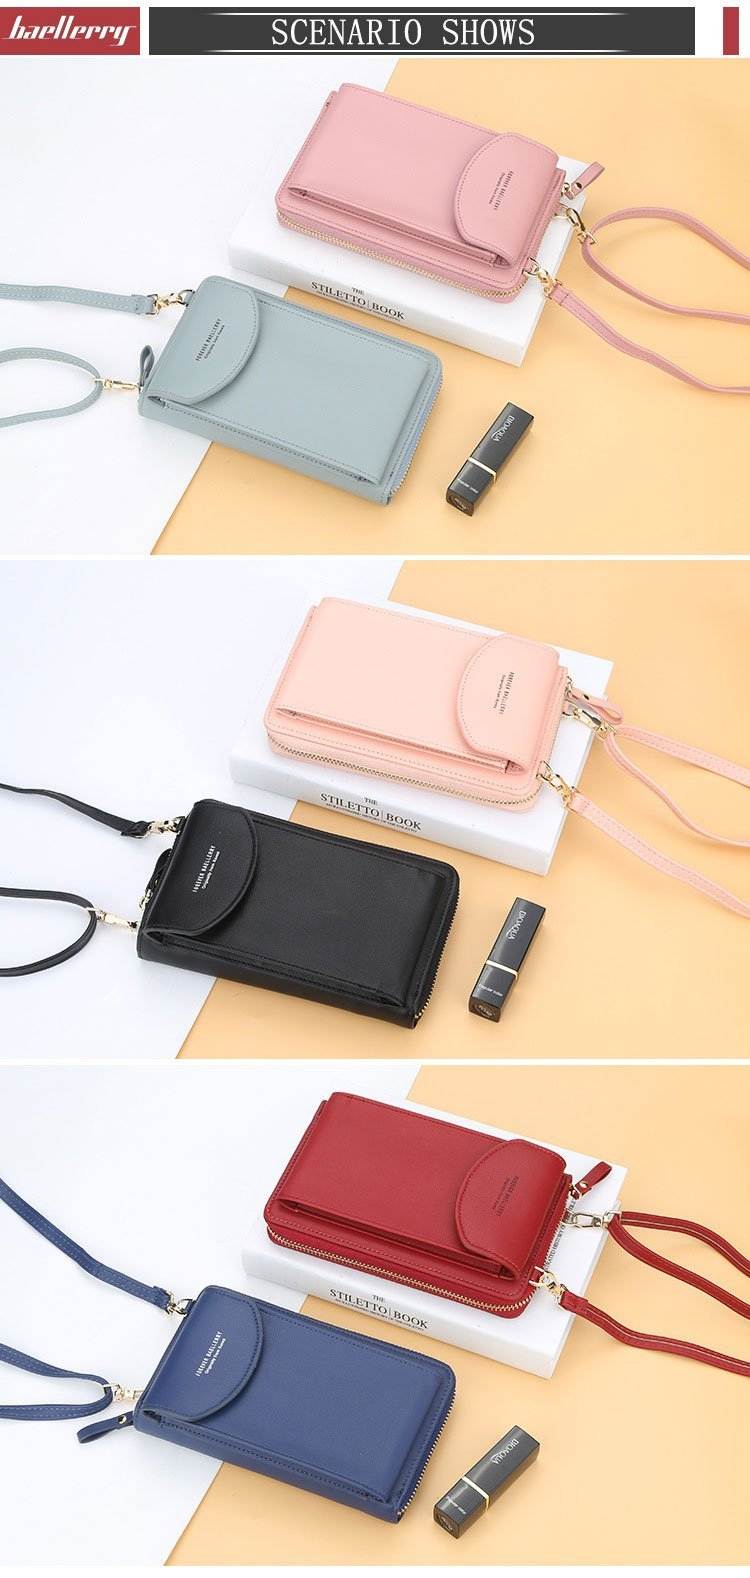 💥Buy 1 Get 1 Free💥 2 AEQUEEN Coin Cell Phone  Small Crossbody Bag - 7 Bess